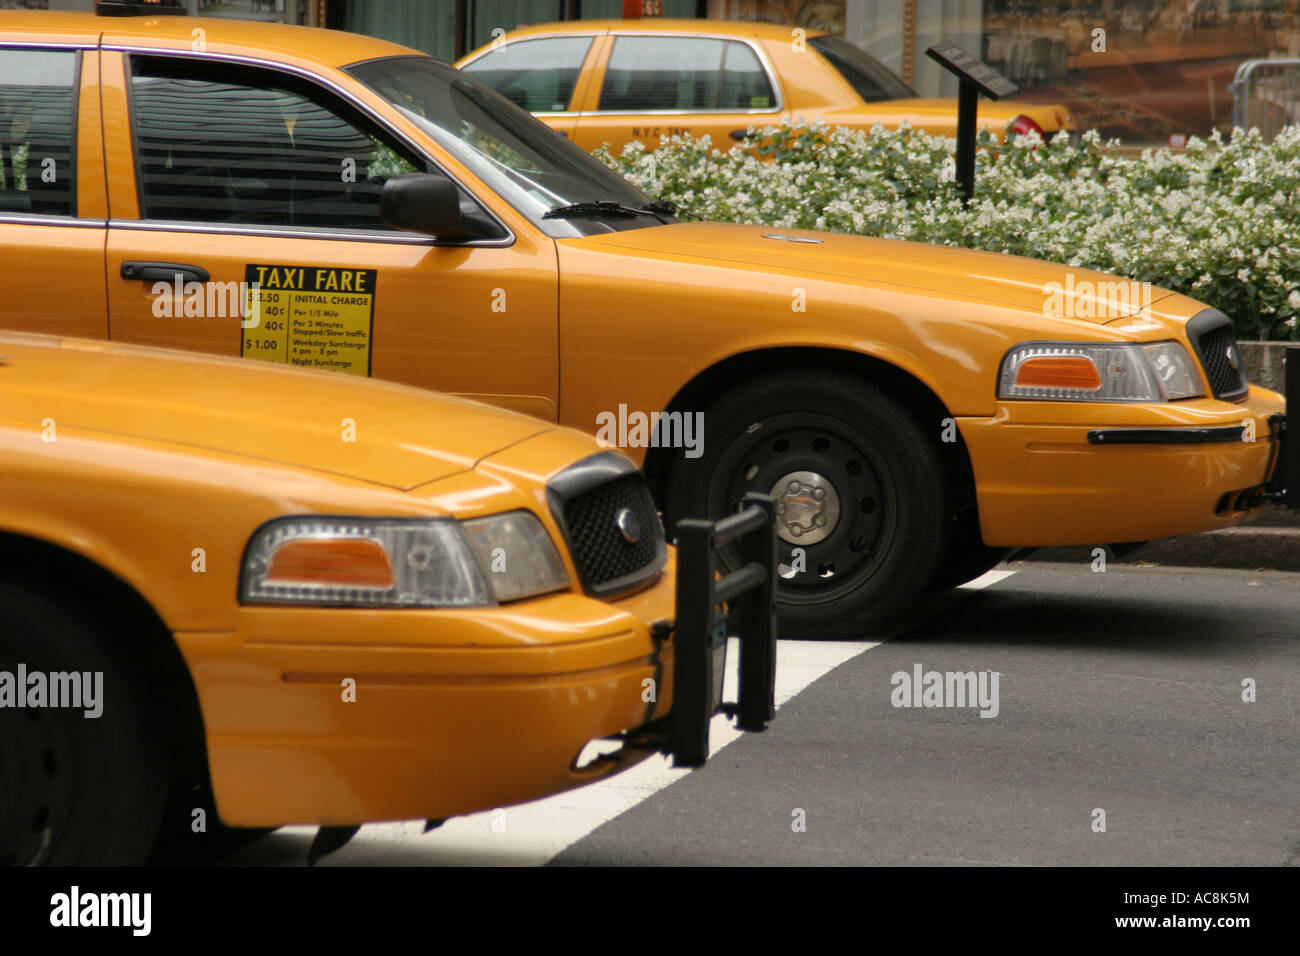 New York taxis - Stock Image